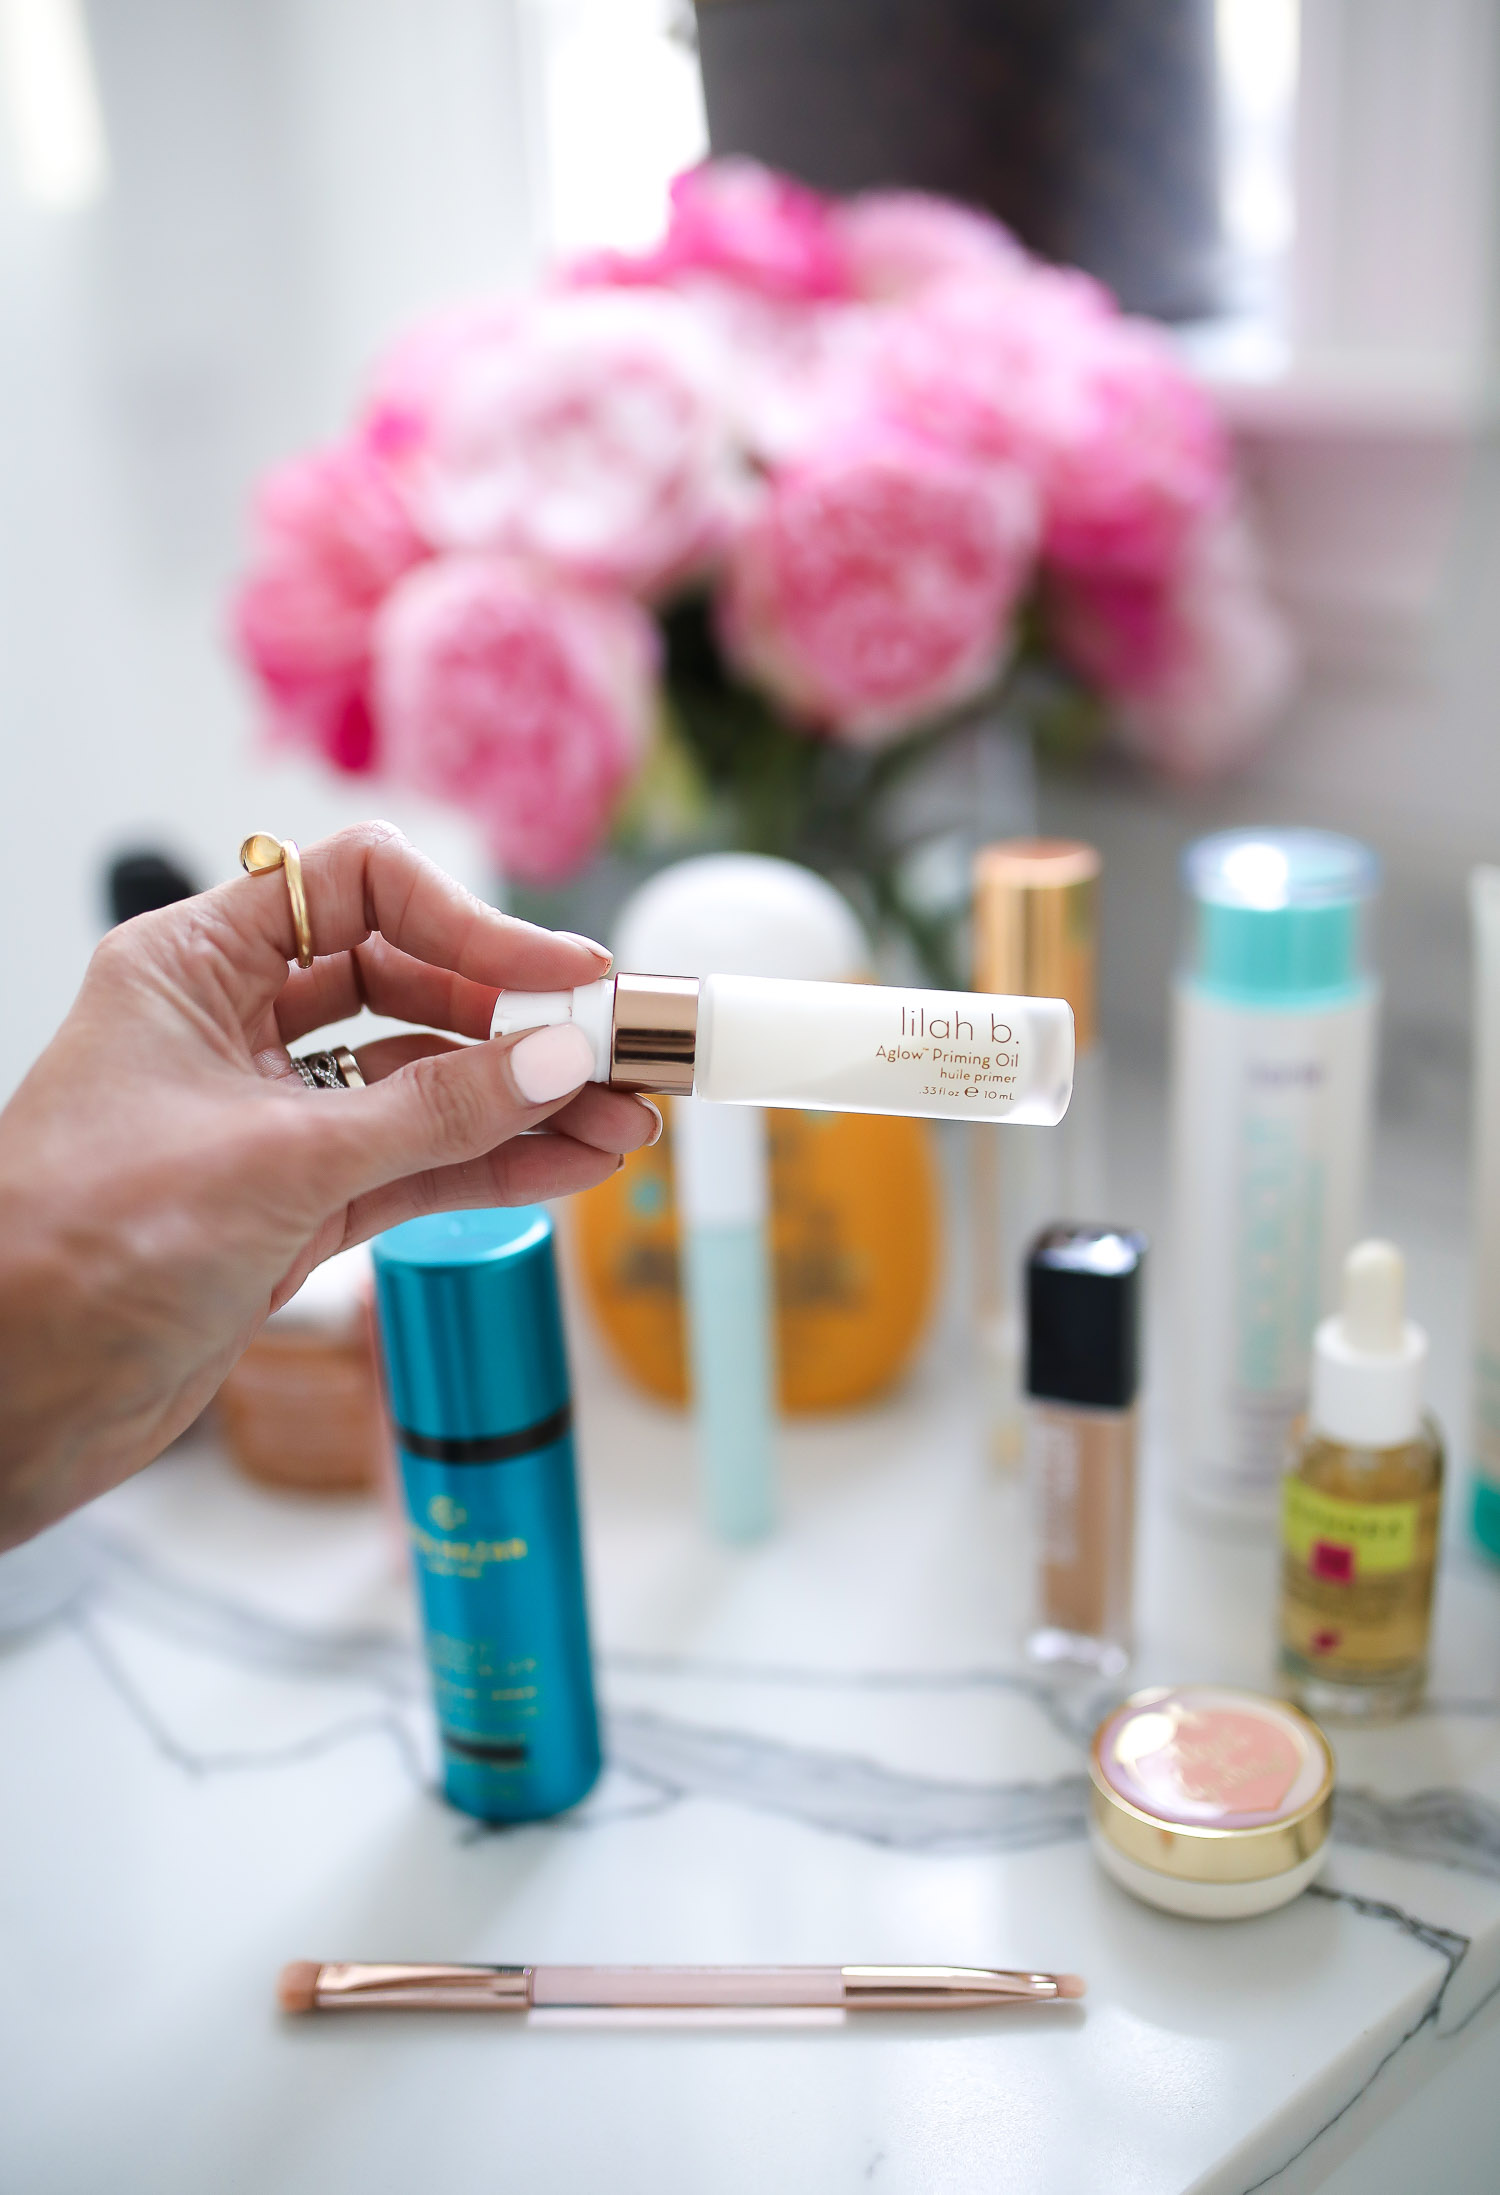 Sephora Favorites by popular US beauty blog, The Sweetest Thing: image of a woman holding Lilah B priming oil in her hand.